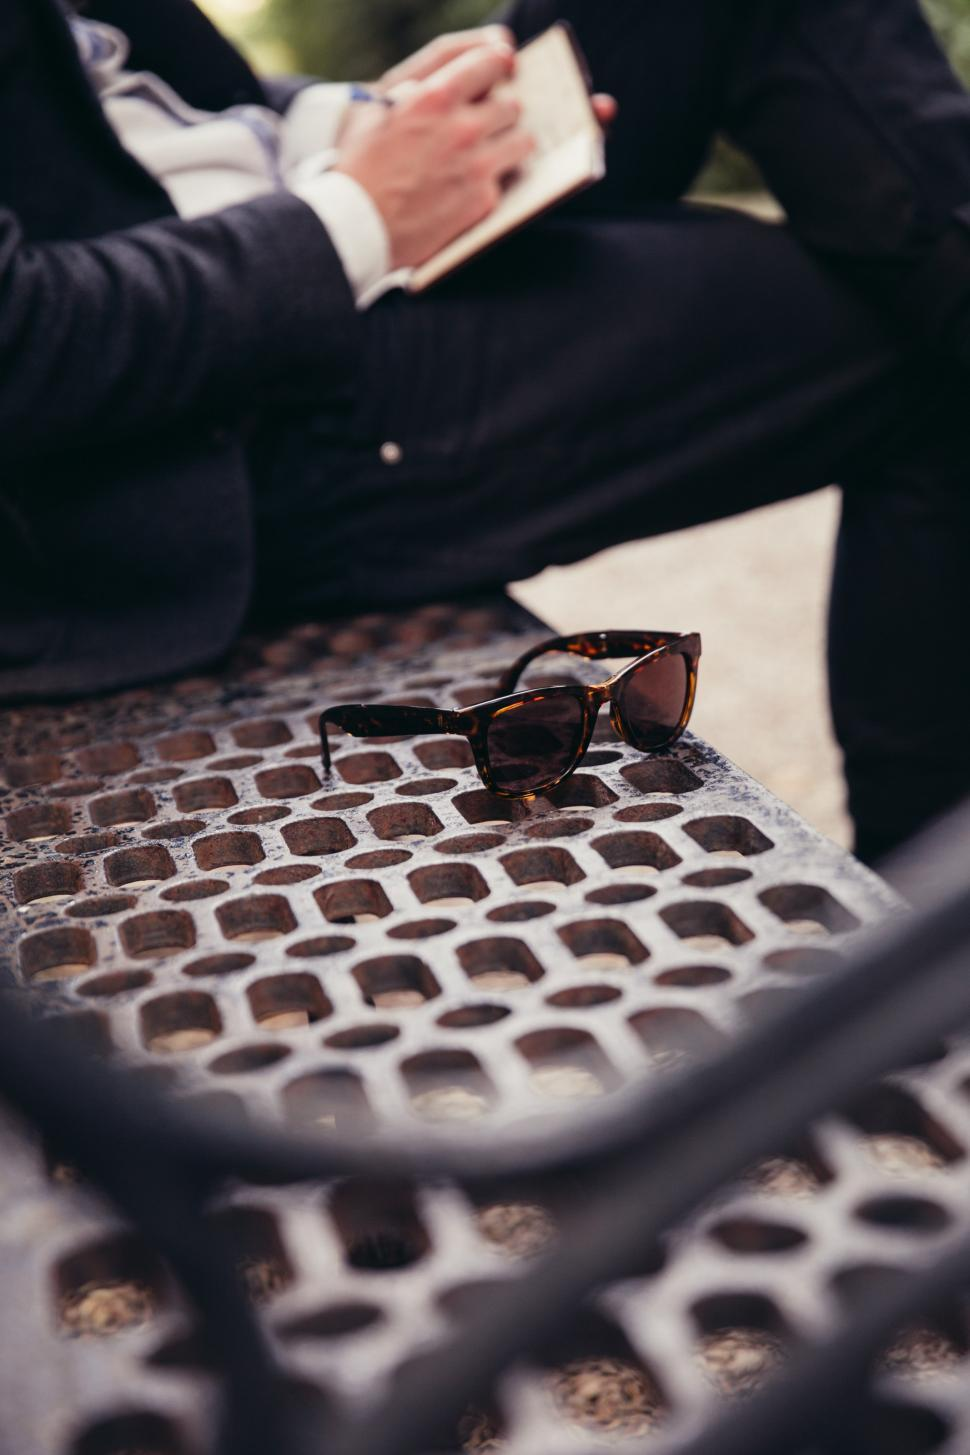 Download Free Stock HD Photo of A caucasian man writing and sunglasses kept on a park bench Online